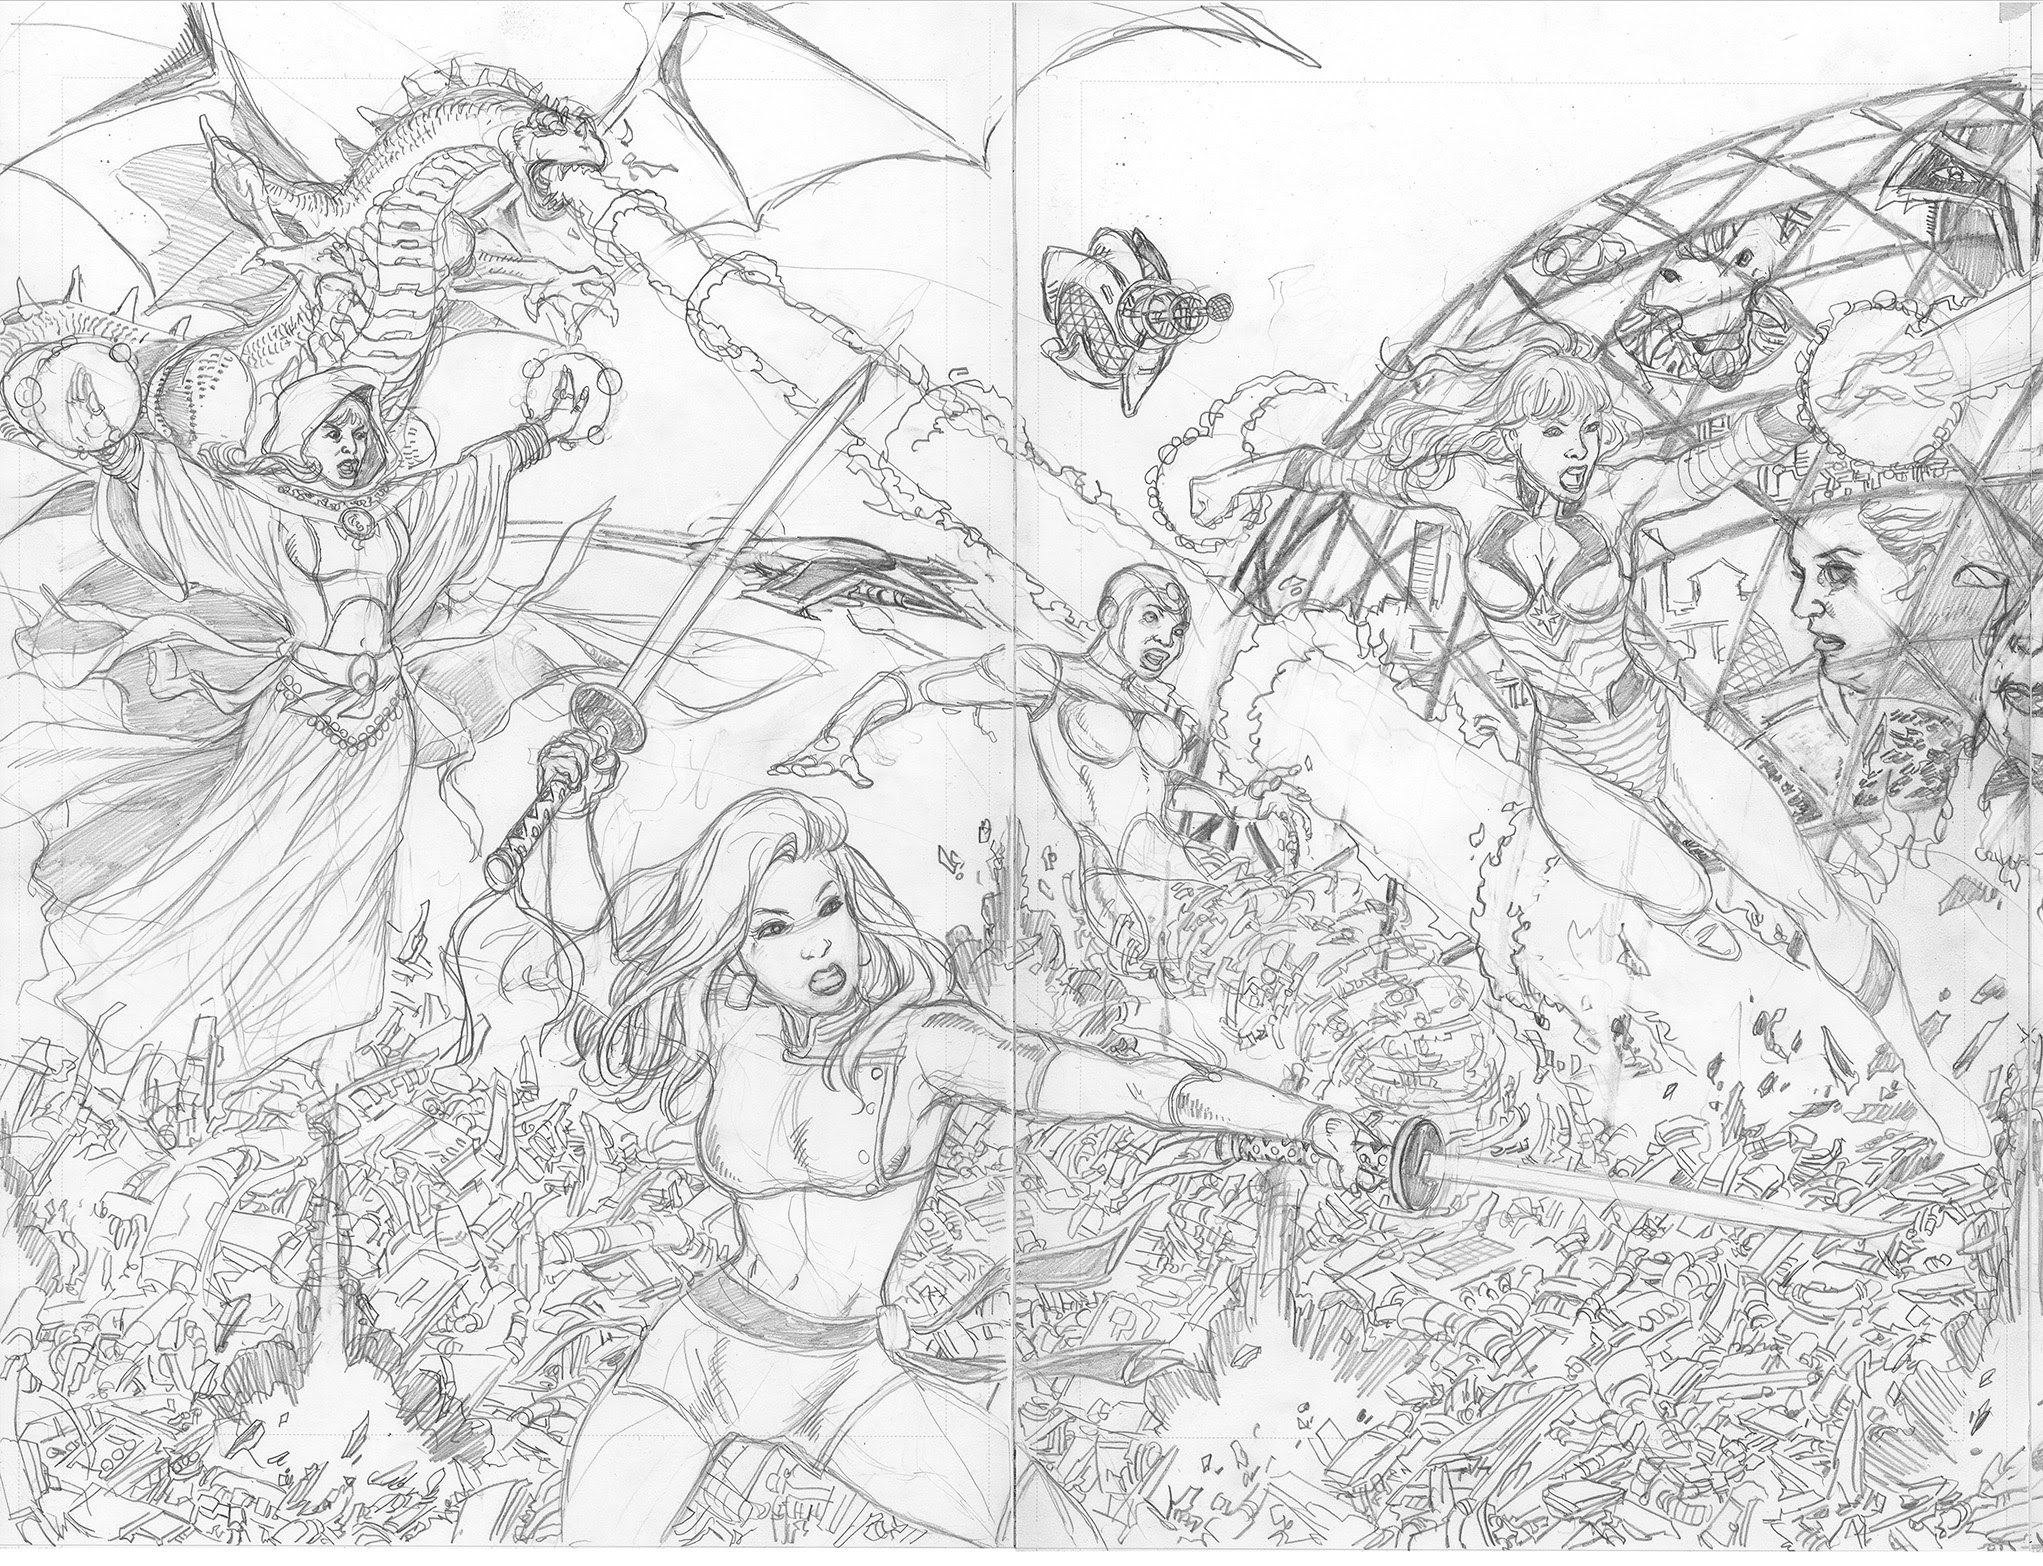 GEORGE PÉREZ'S SIRENS #1 Pencils Left-Side Cover D by George Pérez